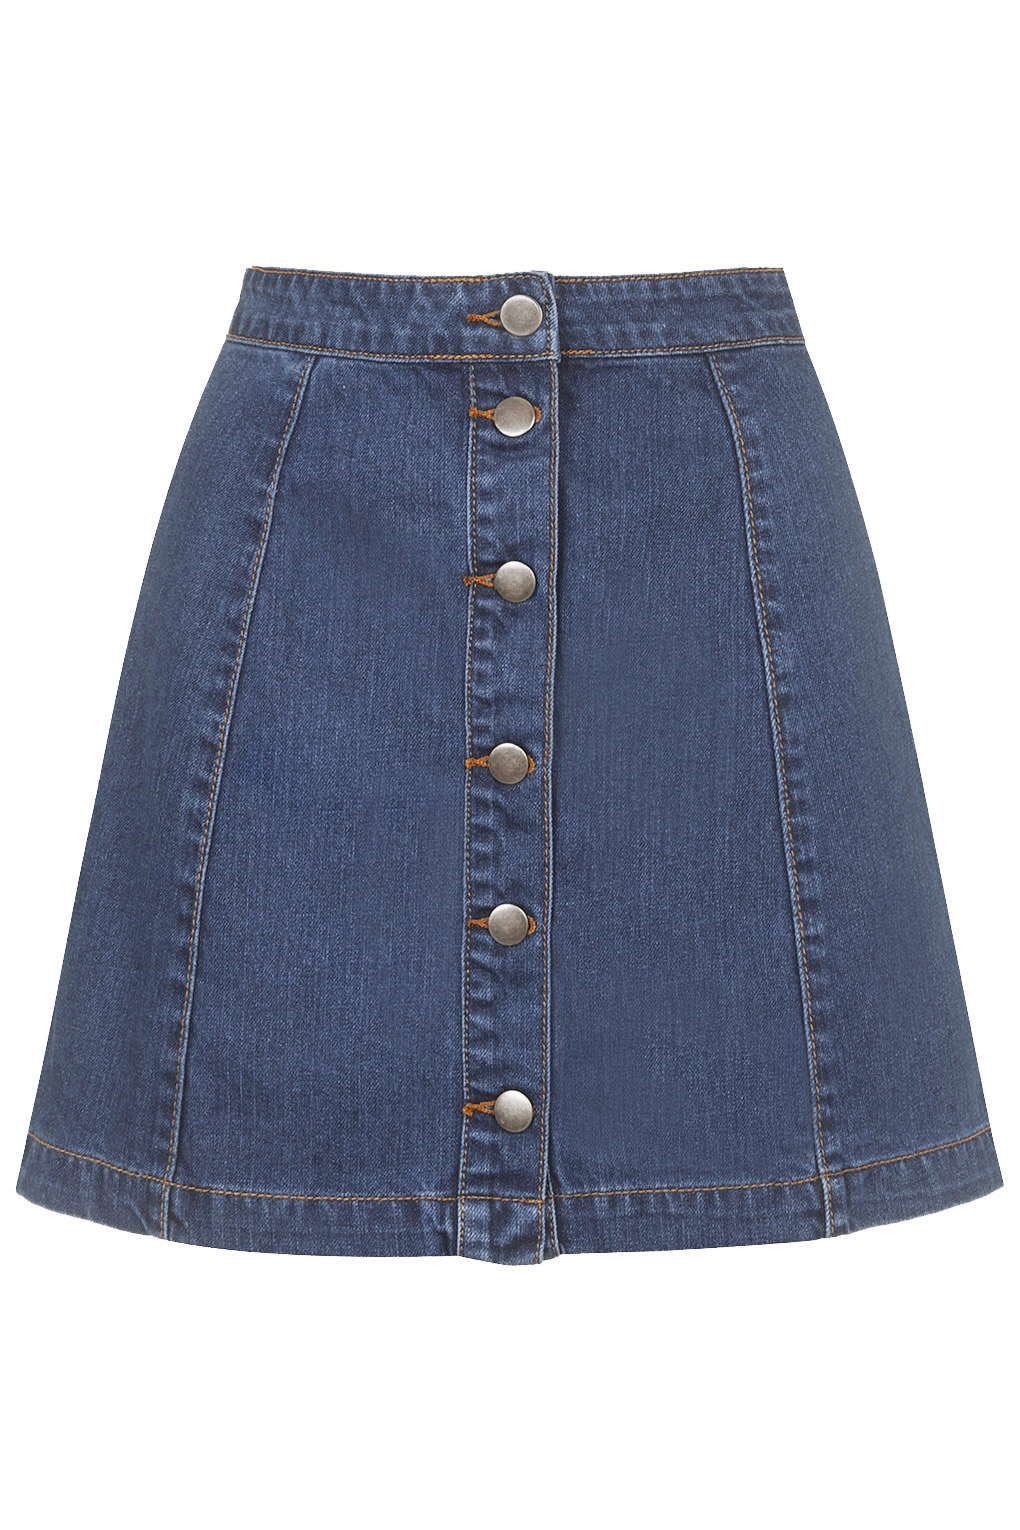 A-Line Denim Skirt by Glamorous - Denim - Clothing | Topshop ...